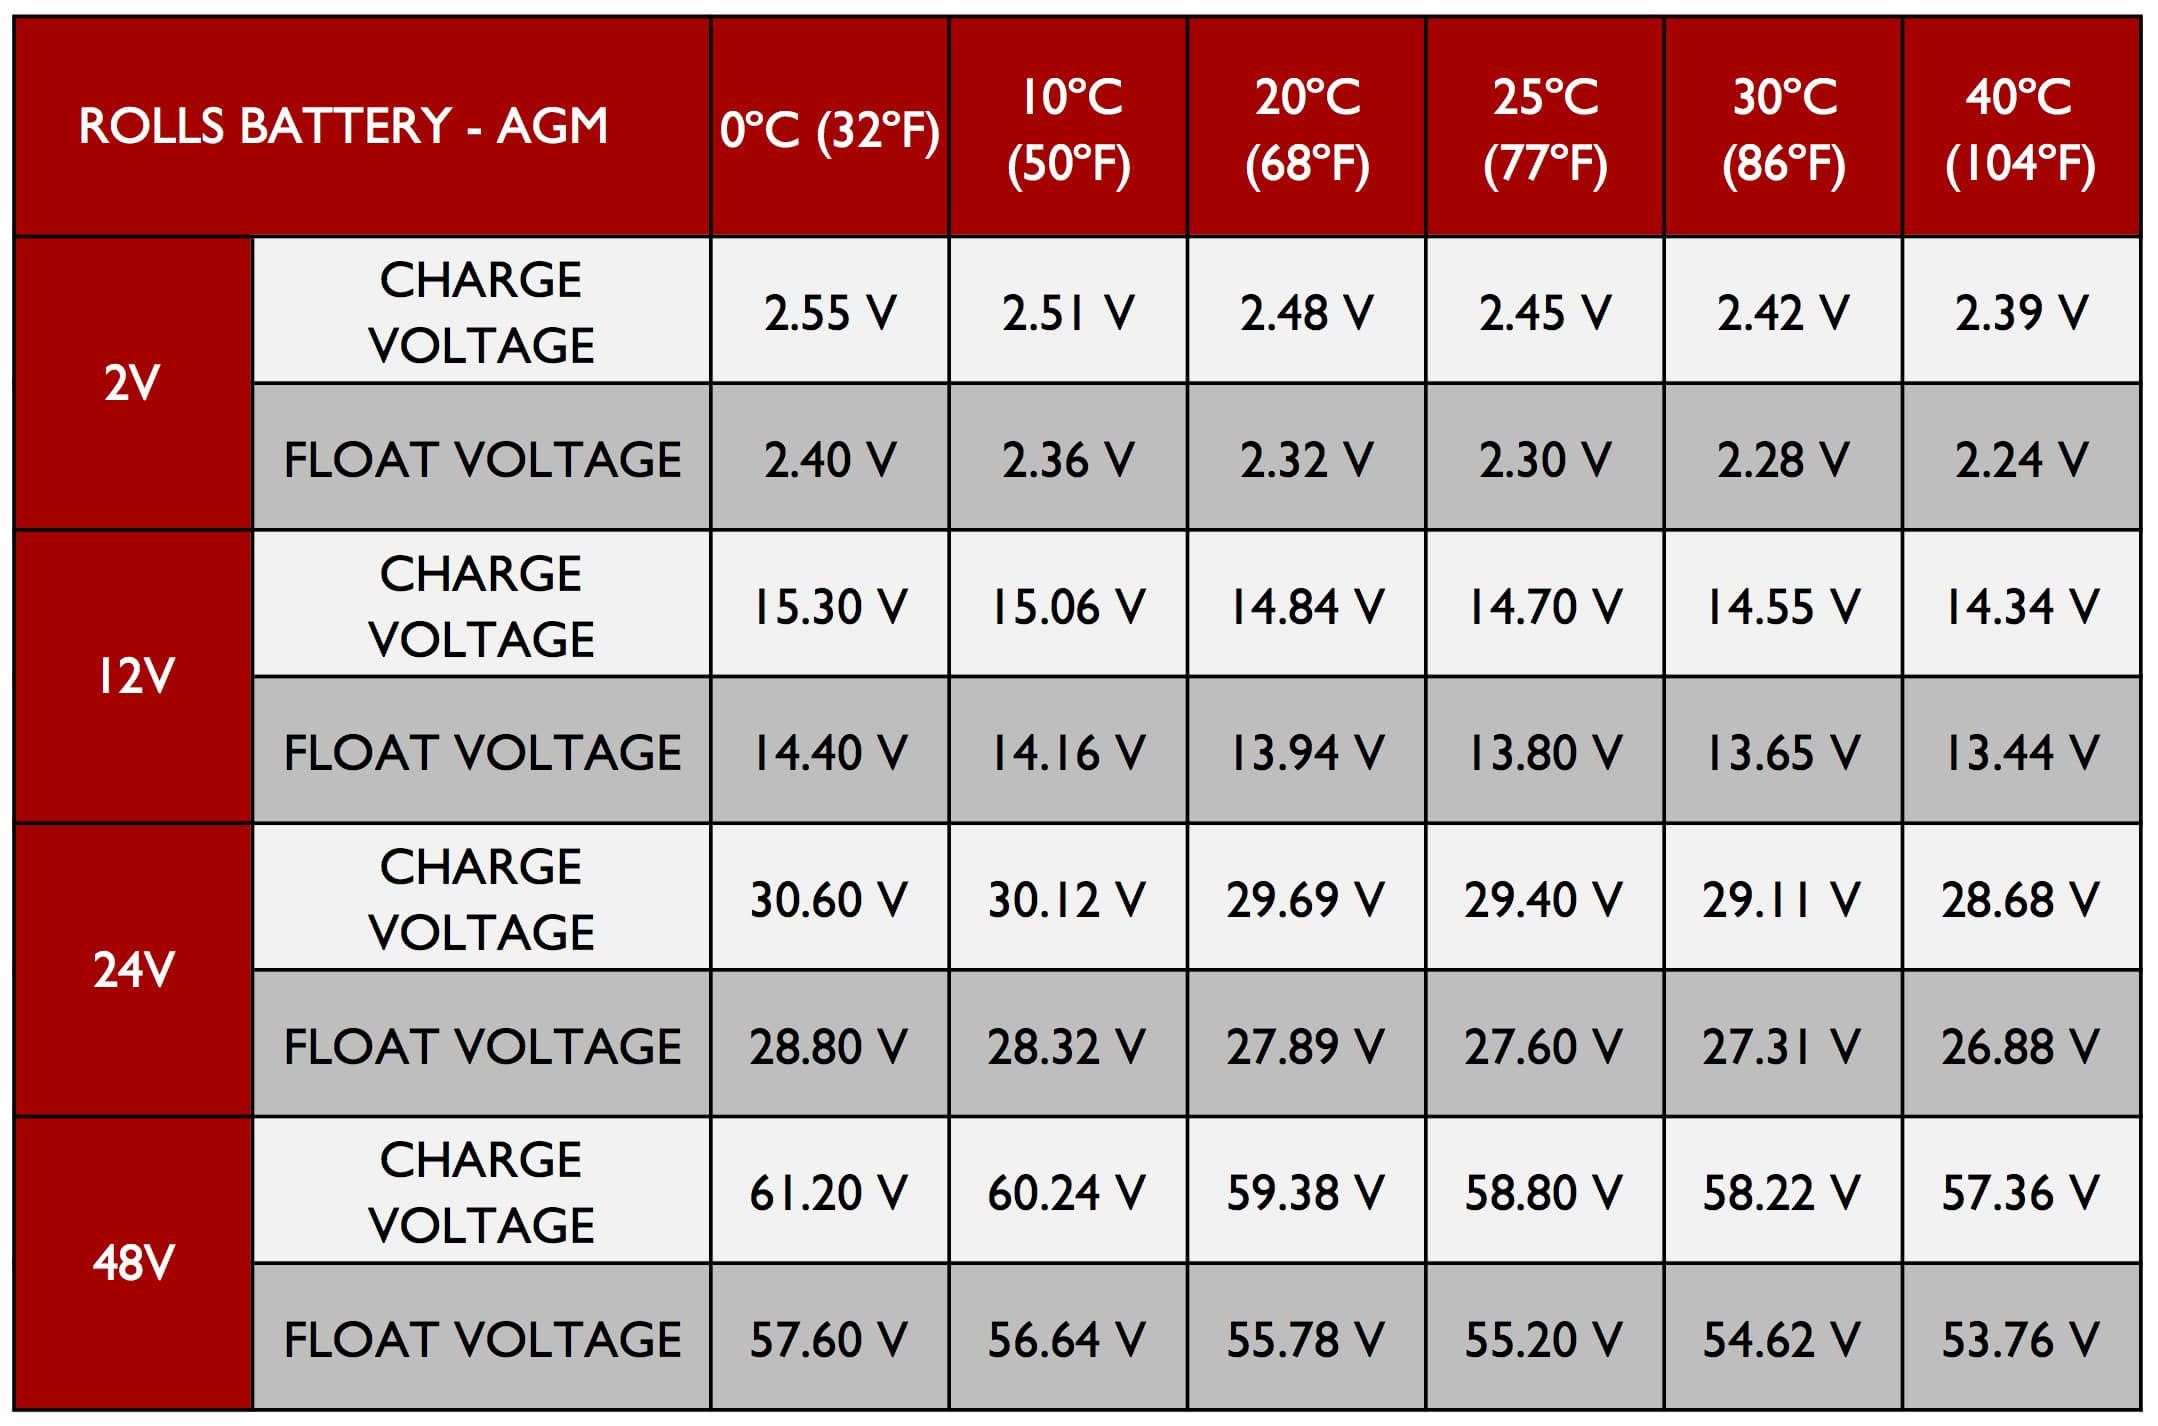 Take a look at the chart of an AMG voltage range